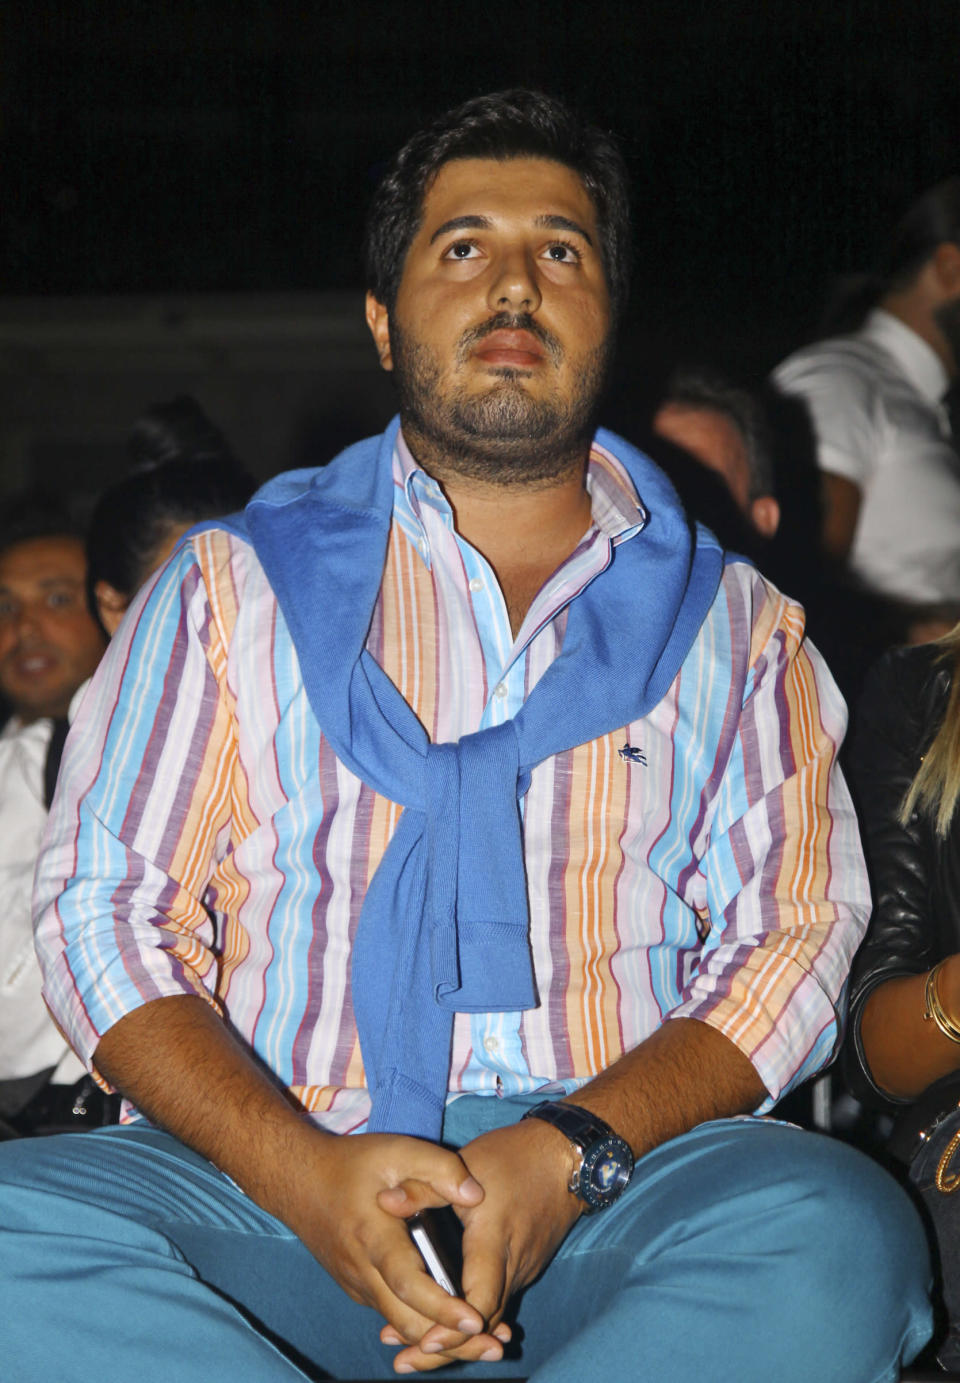 Turkish-Iranian businessman Reza Zarrab, charged in the U.S. for evading sanctions on Iran, watches a concert in Istanbul on Sept 8, 2013. (Photo: Depo Photos via AP)